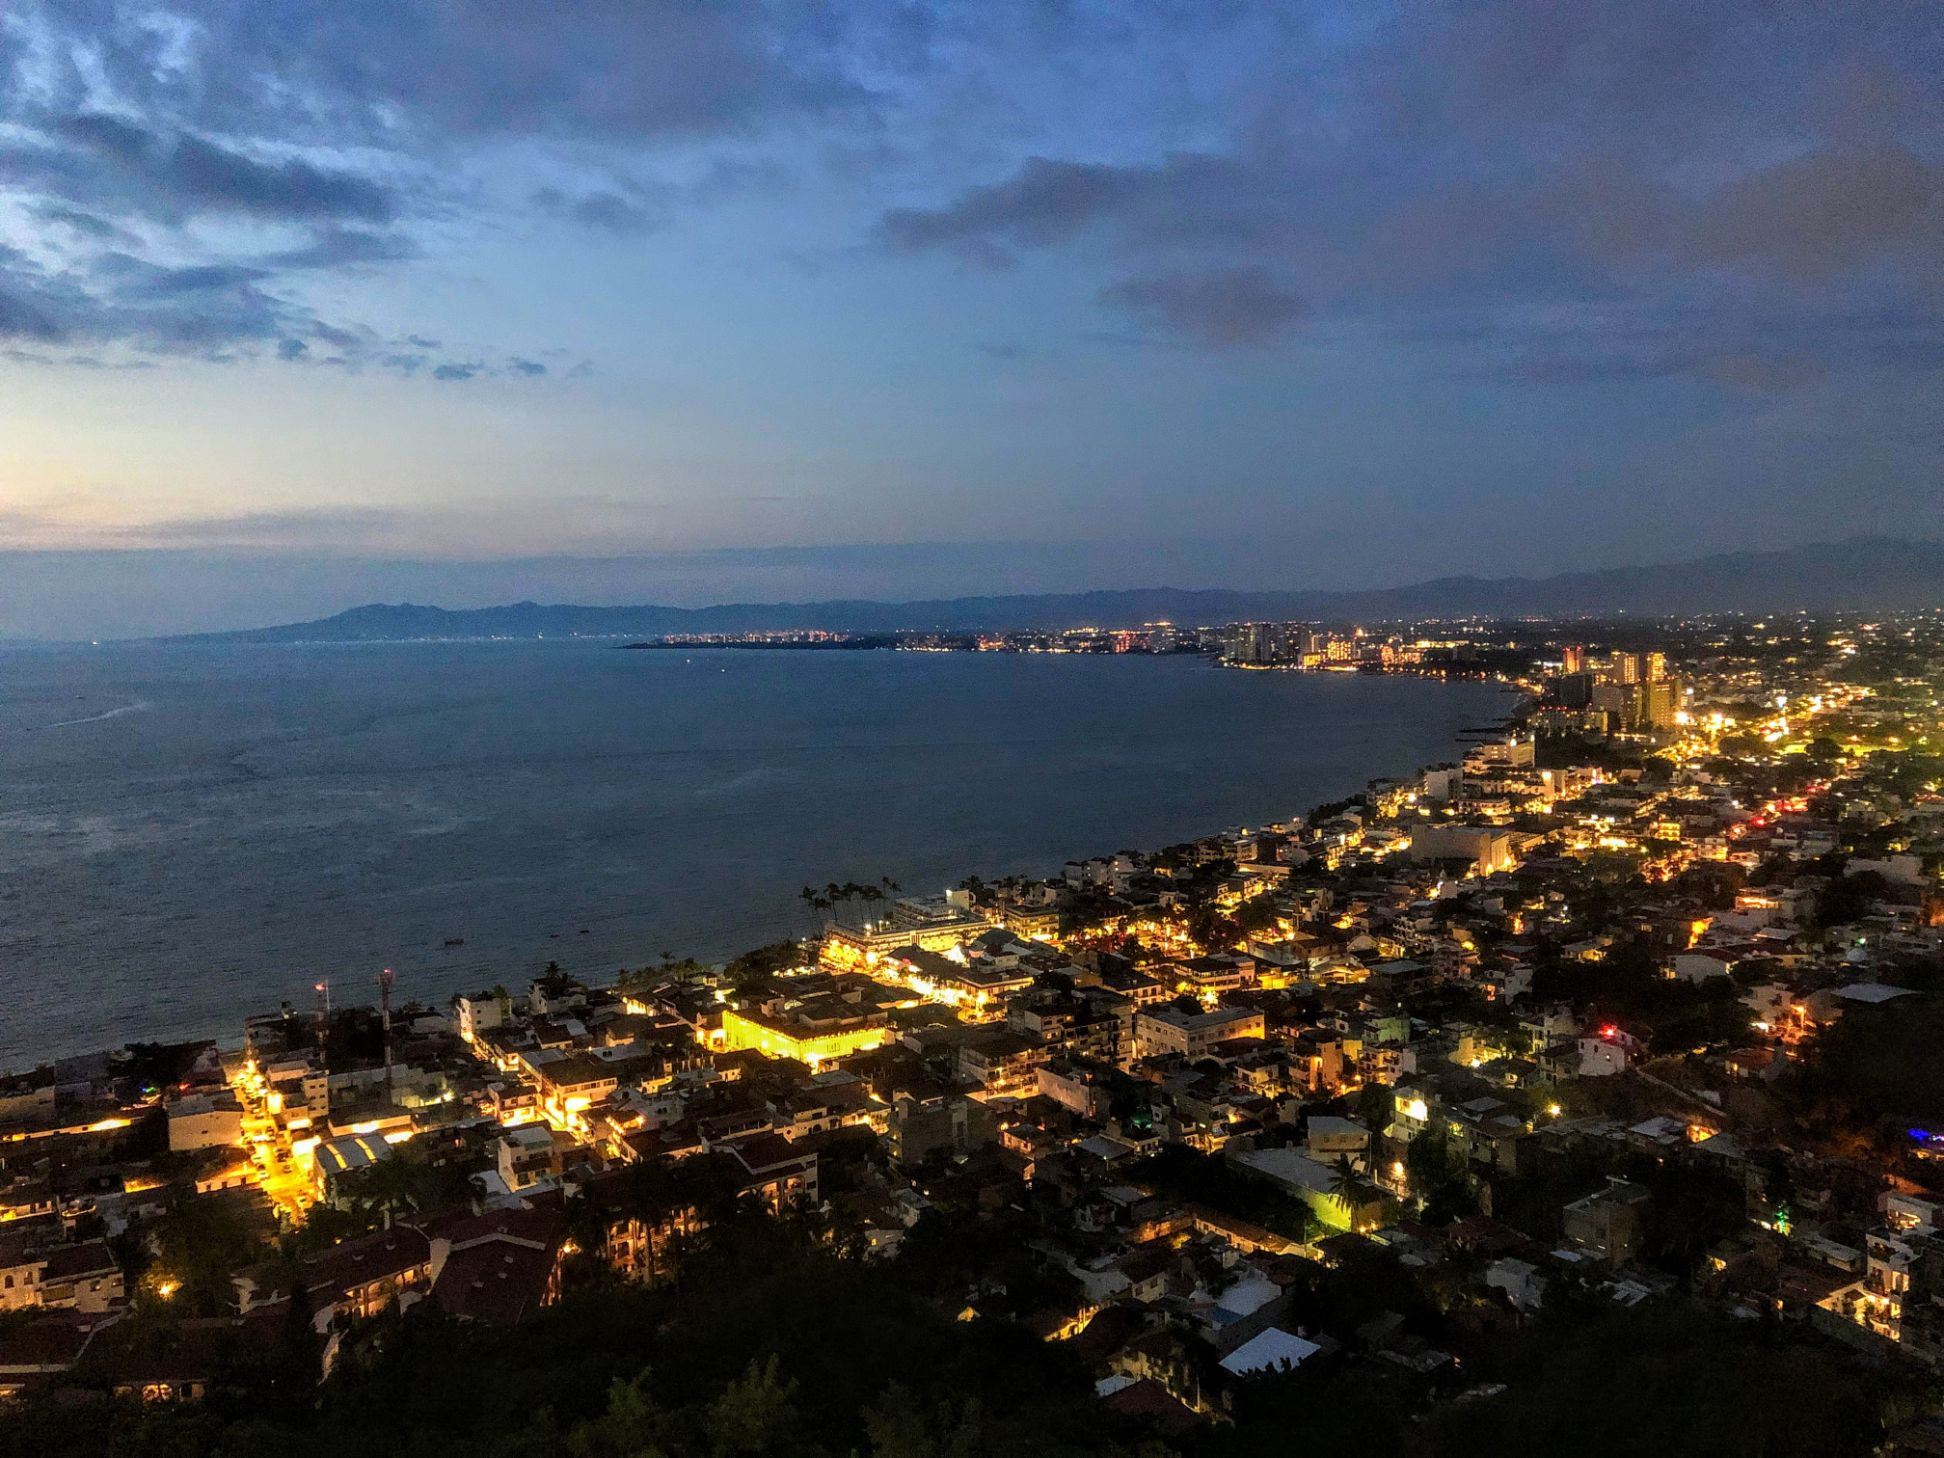 Aerial view of Puerto Vallarta at night